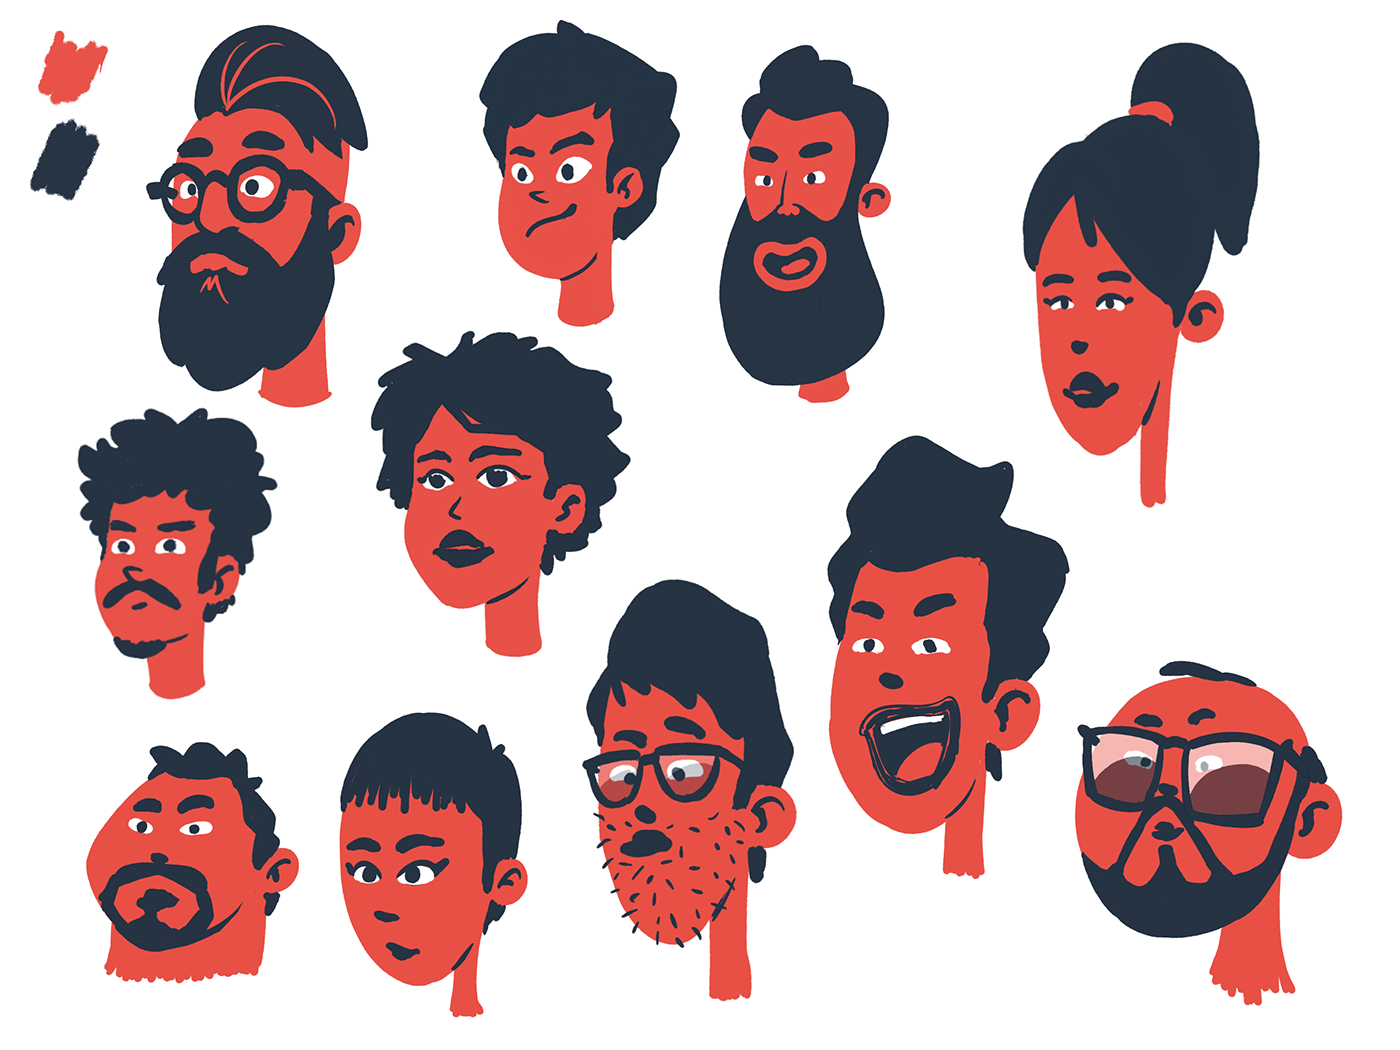 Character Design Styles with Limited Palette